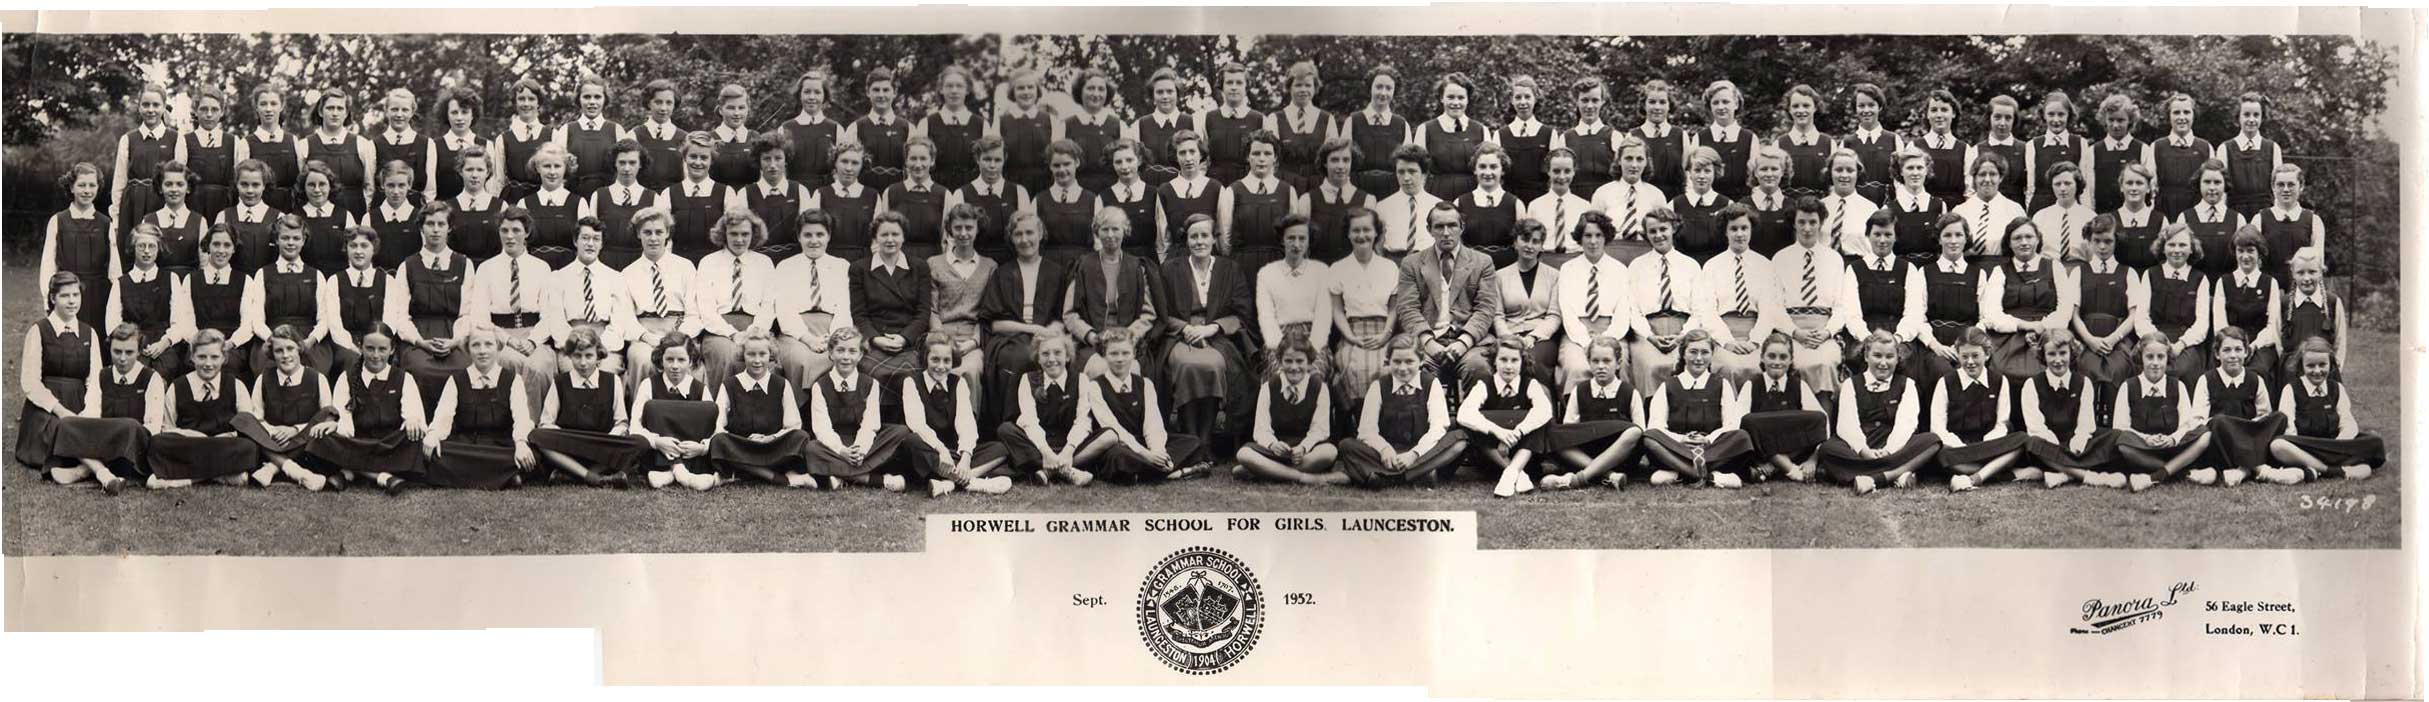 Horwell Girls Grammar School in 1952. Photo courtesy of Ann Caddick.